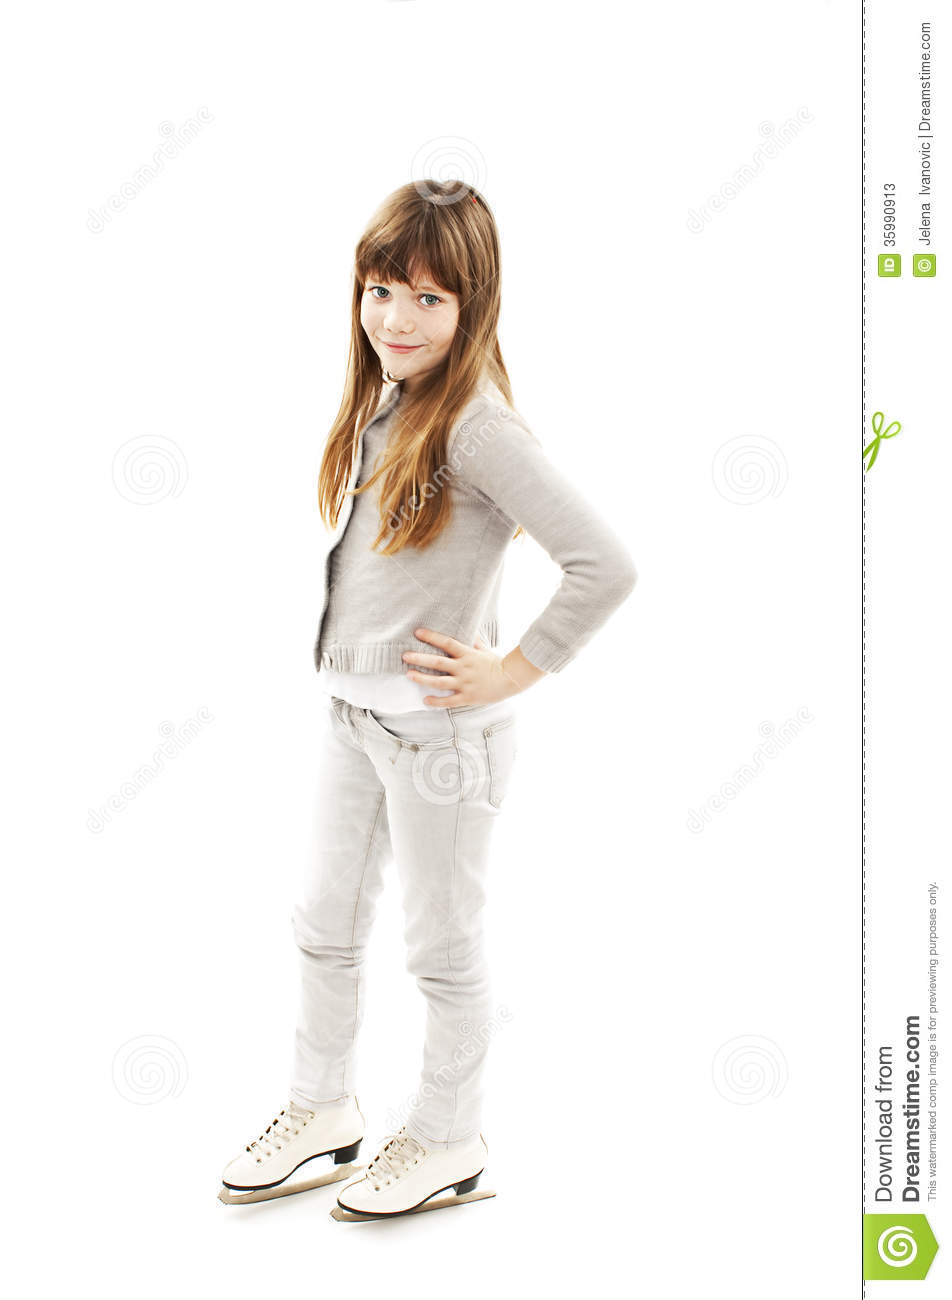 Little girl with ice skates